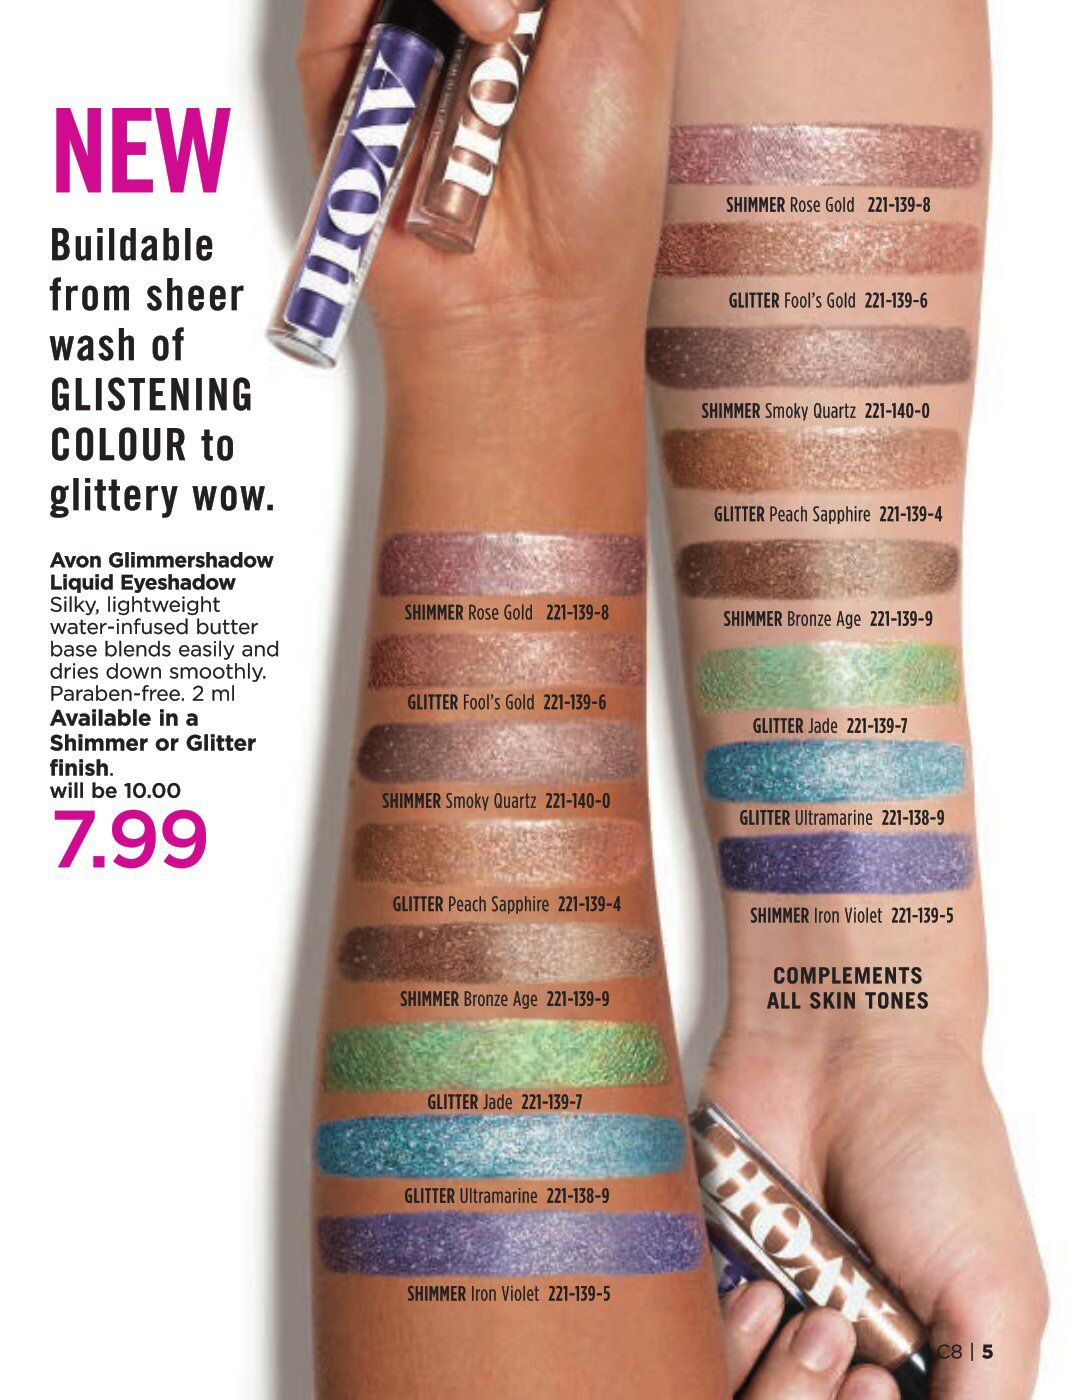 Try our new Glimmer Shadow for only 7.99 in Avon's